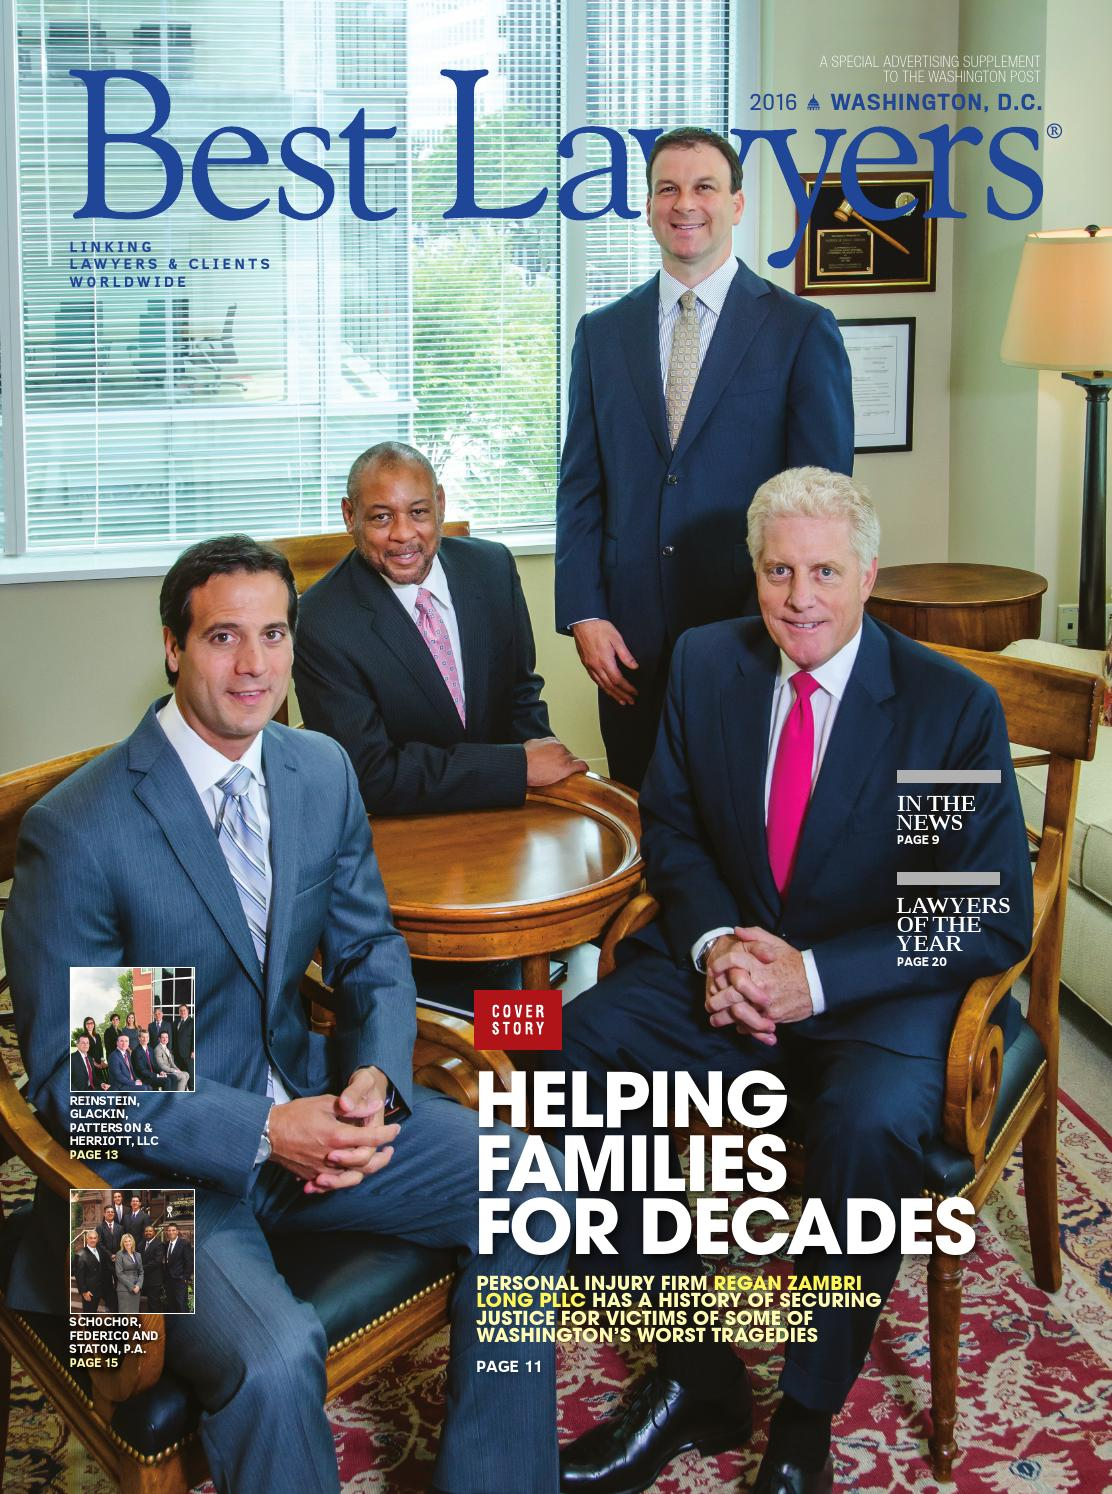 Best Lawyers in Washington, D.C. 2016 by Best Lawyers - issuu